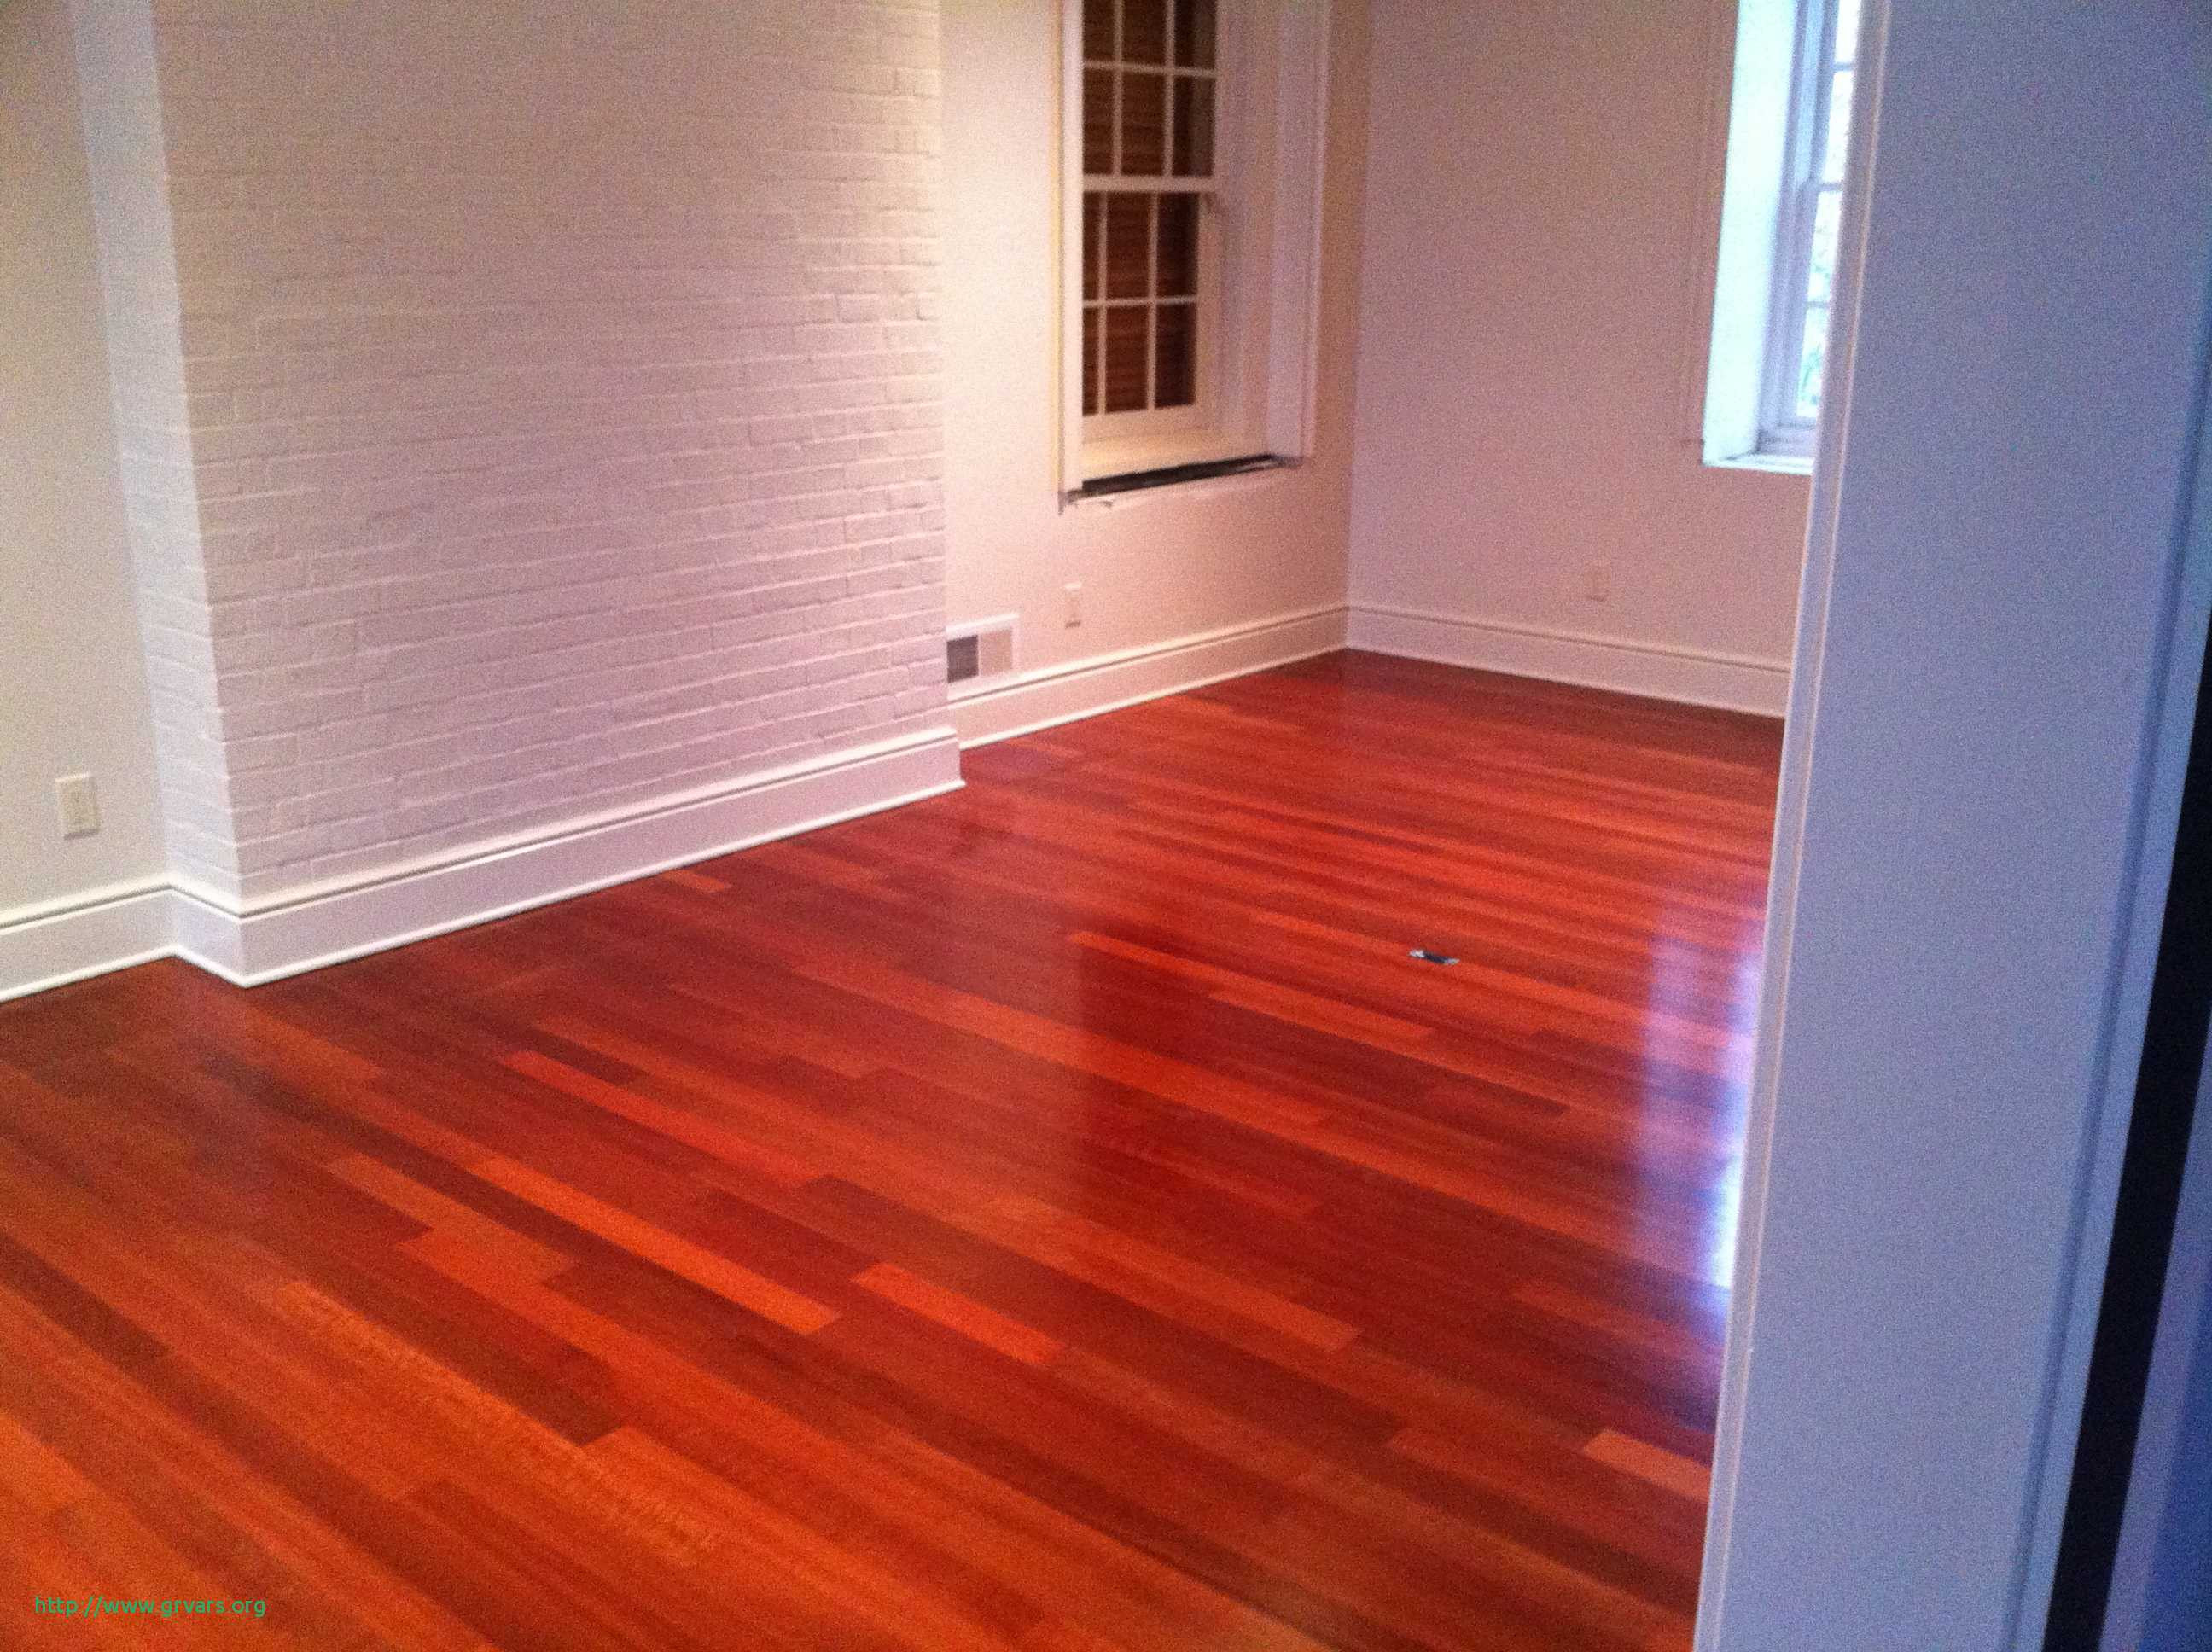 hardwood floor installation nh of 20 luxe how are hardwood floors installed ideas blog pertaining to exotic red wood floor installation menomonee falls wi